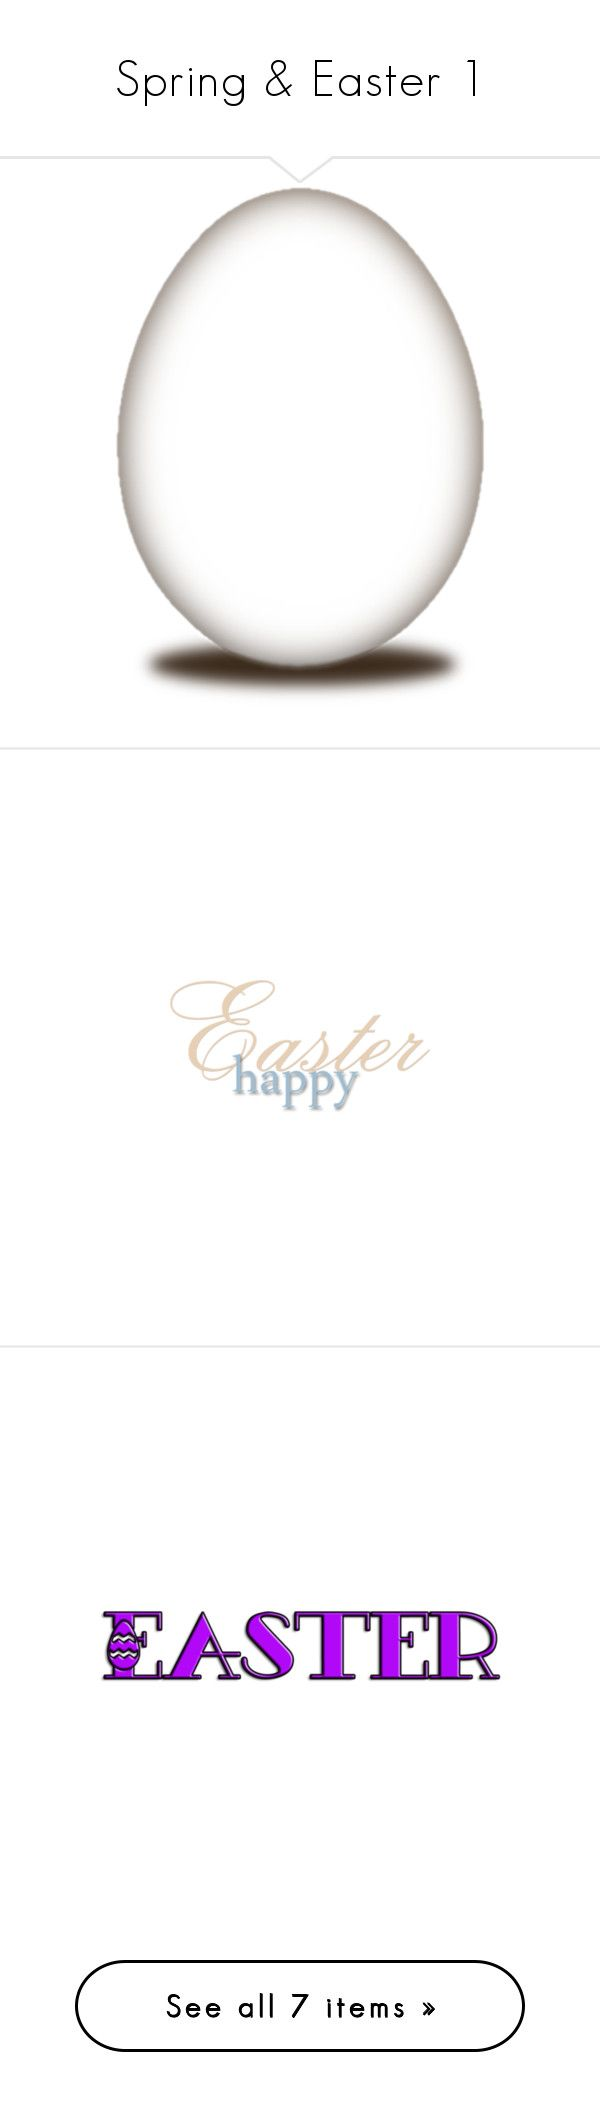 """""""Spring & Easter 1"""" by marianne-spiessens ❤ liked on Polyvore featuring easter, egg, frames, backgrounds, effects, borders, picture frame, home, home decor and text"""